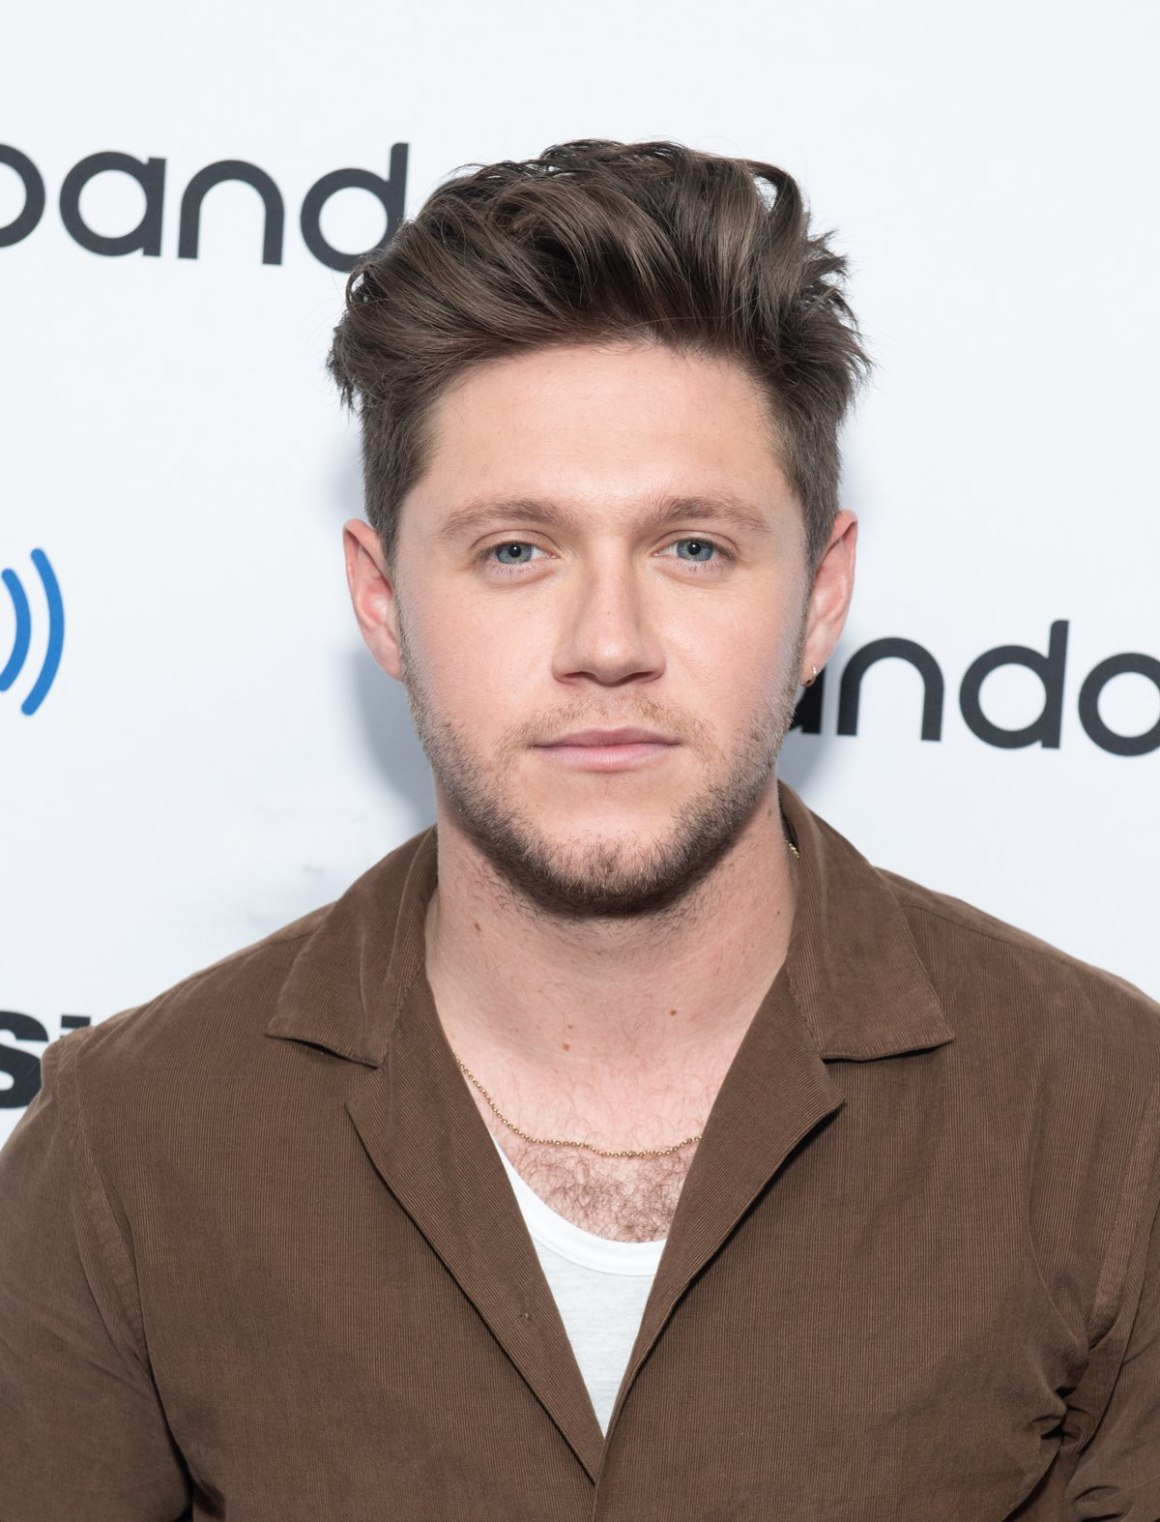 Niall Horan Performs On SiriusXM Hits 1 At The SiriusXM Studios In New York City